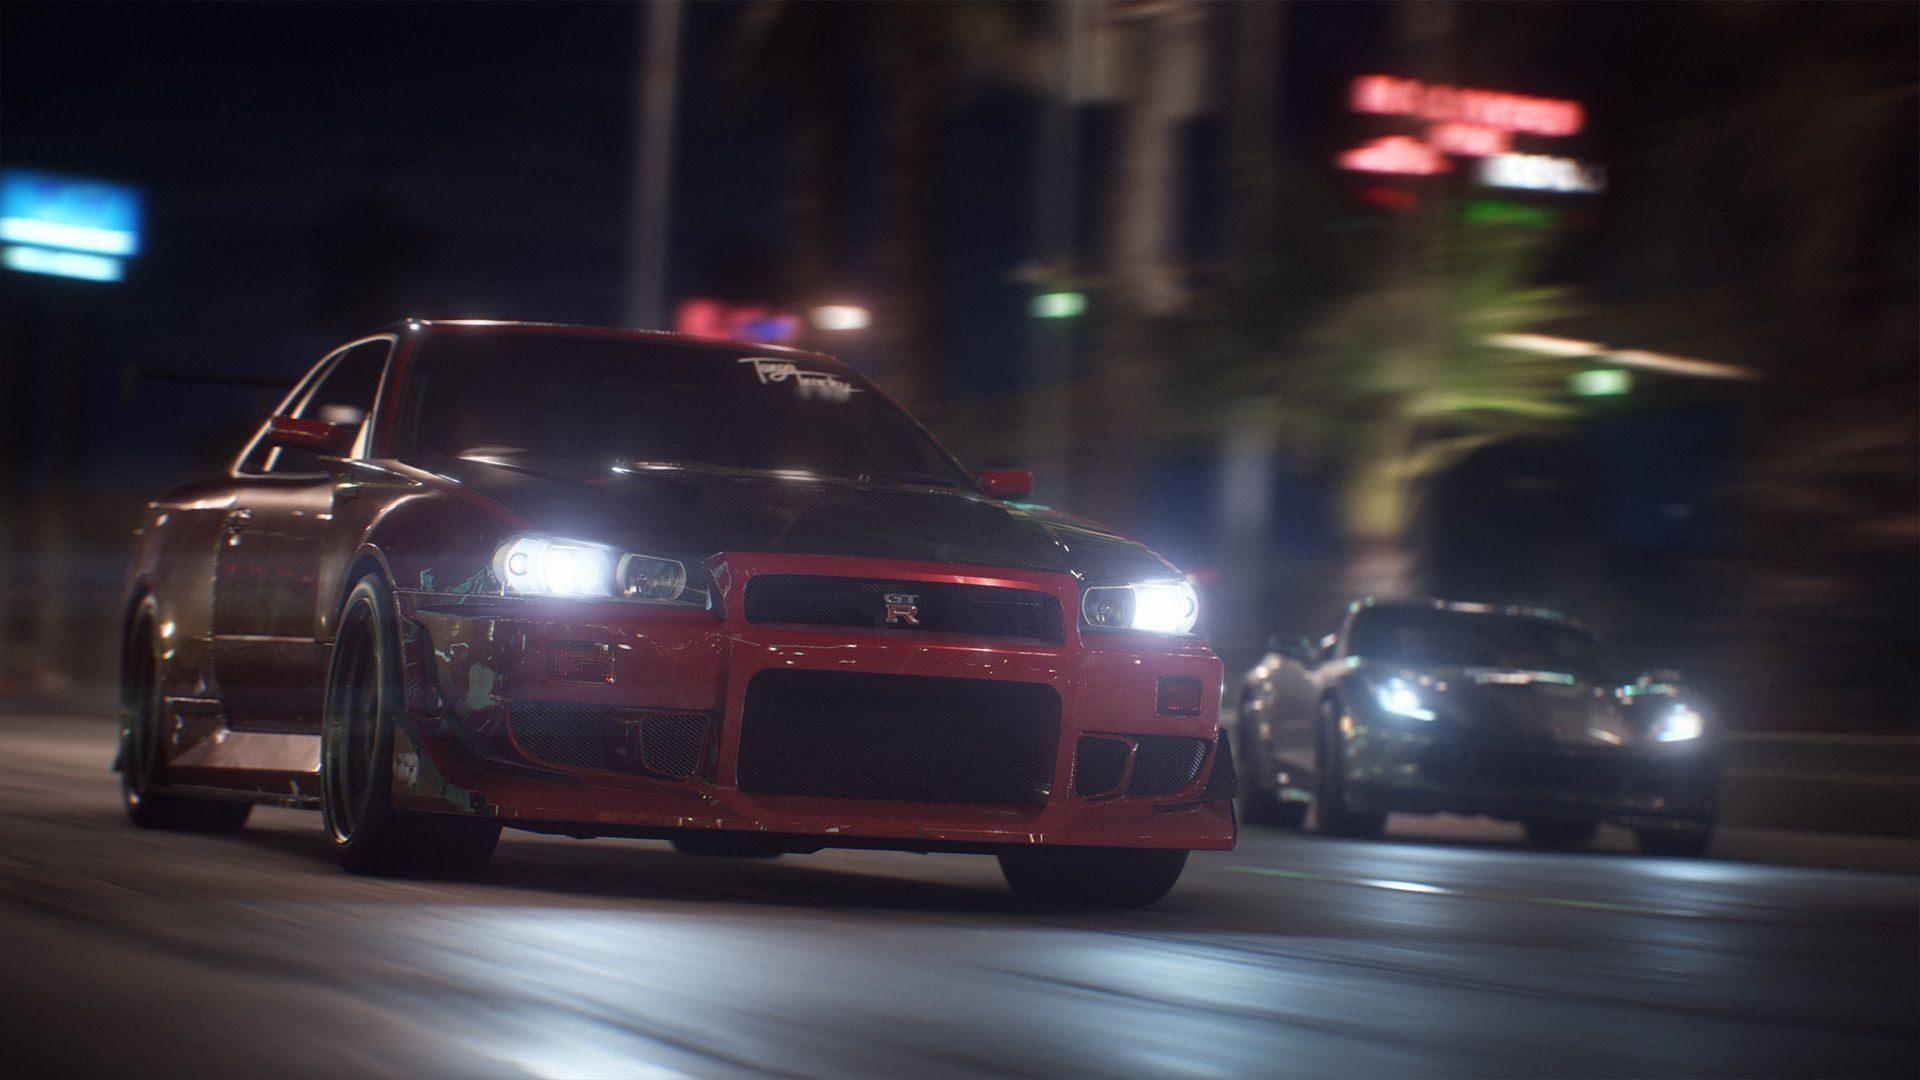 Need for Speed images